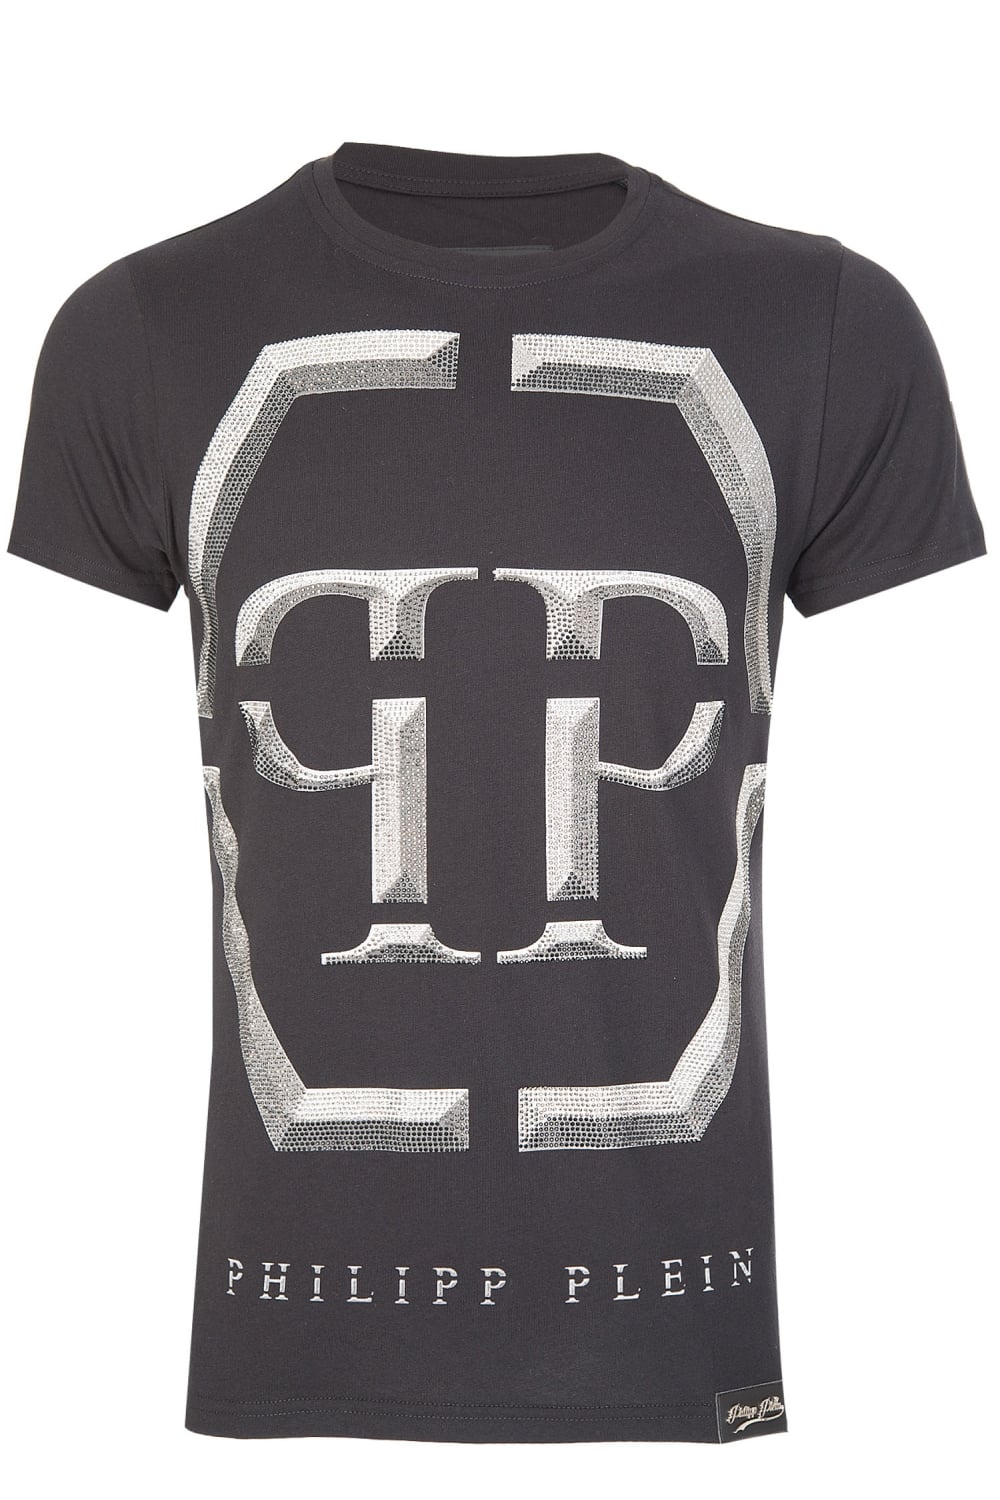 philipp plein winter t shirt black. Black Bedroom Furniture Sets. Home Design Ideas